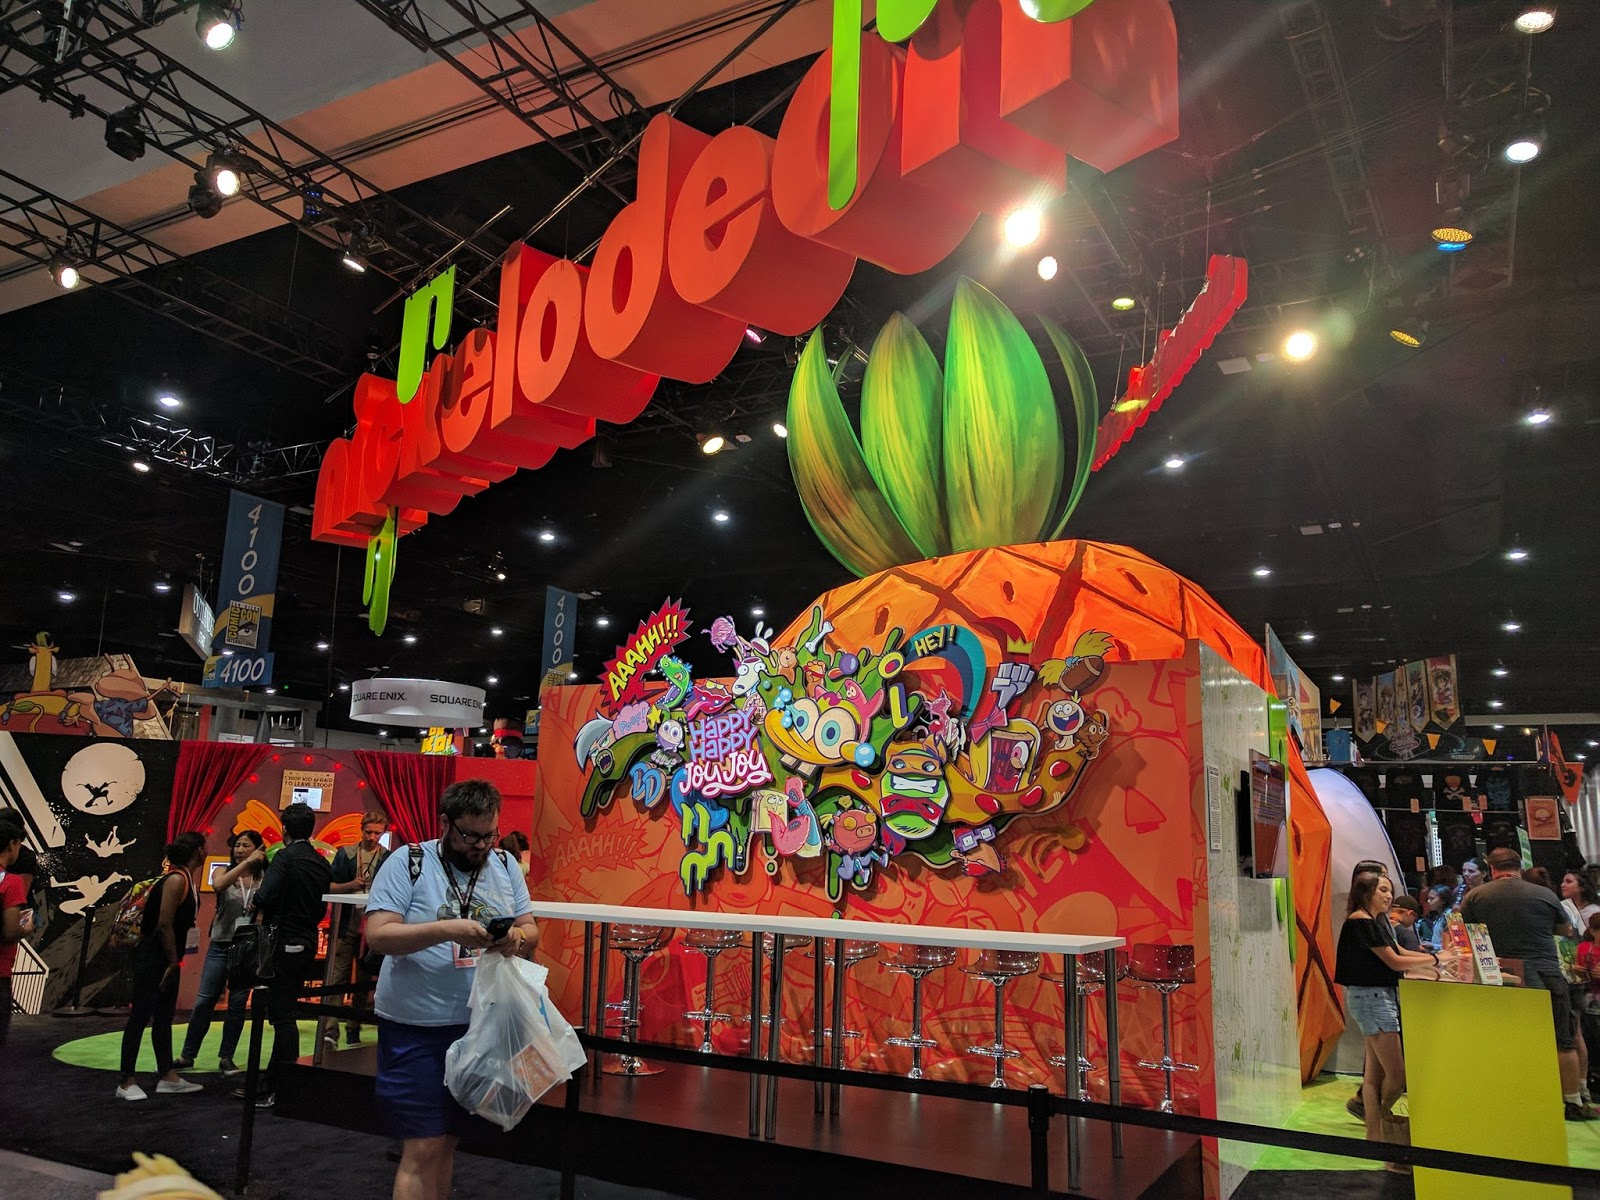 Nickalive Nickelodeon At Comic Con International San